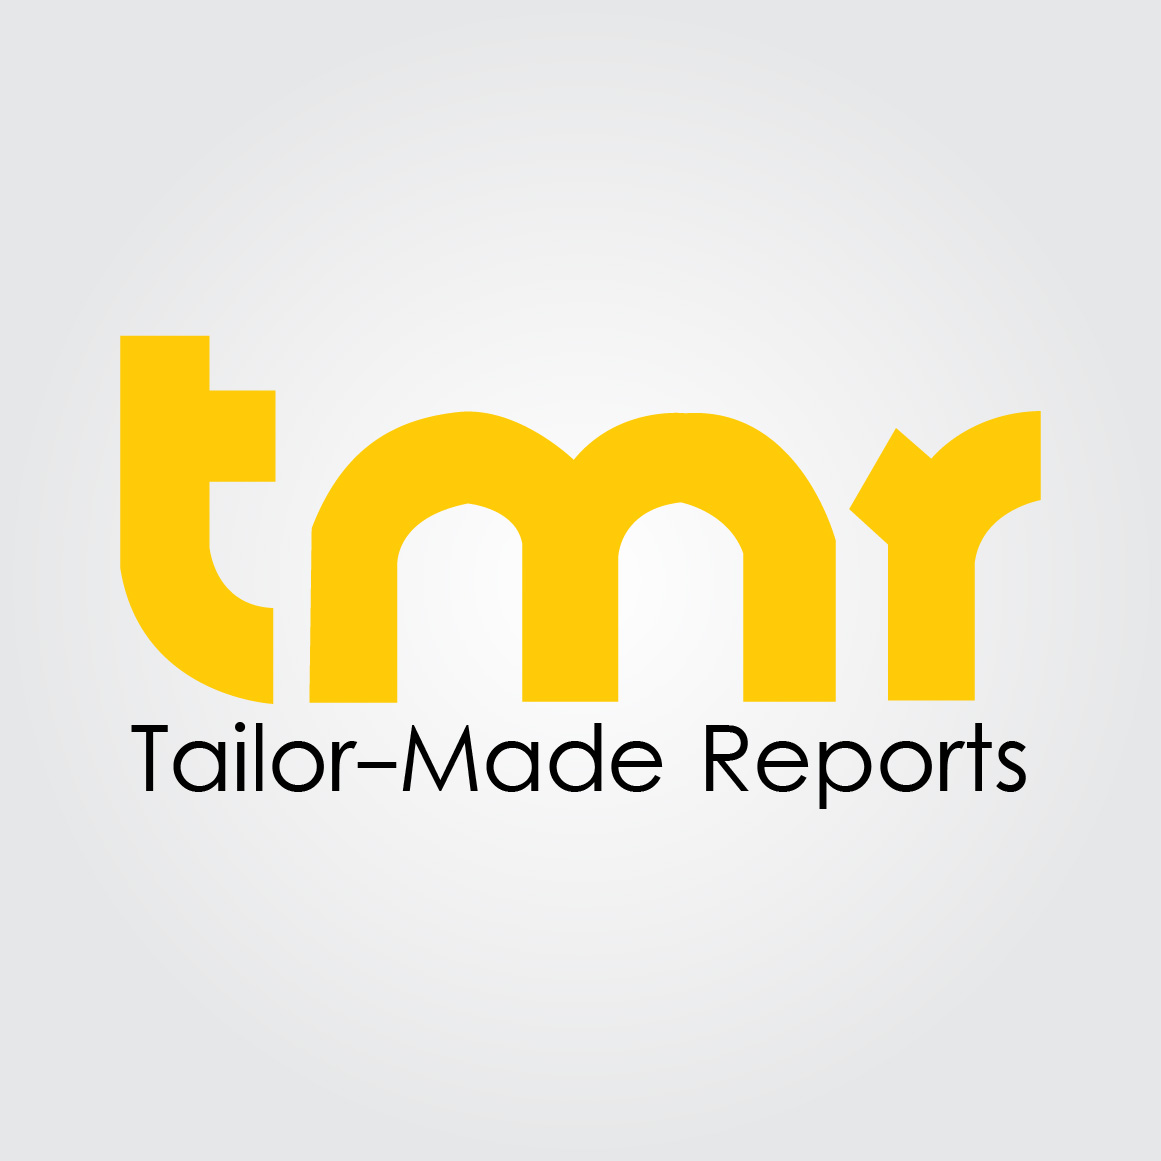 Portable Generator Market expects to gain a Good Growth Trajectory by 2030 | TMR Research Study